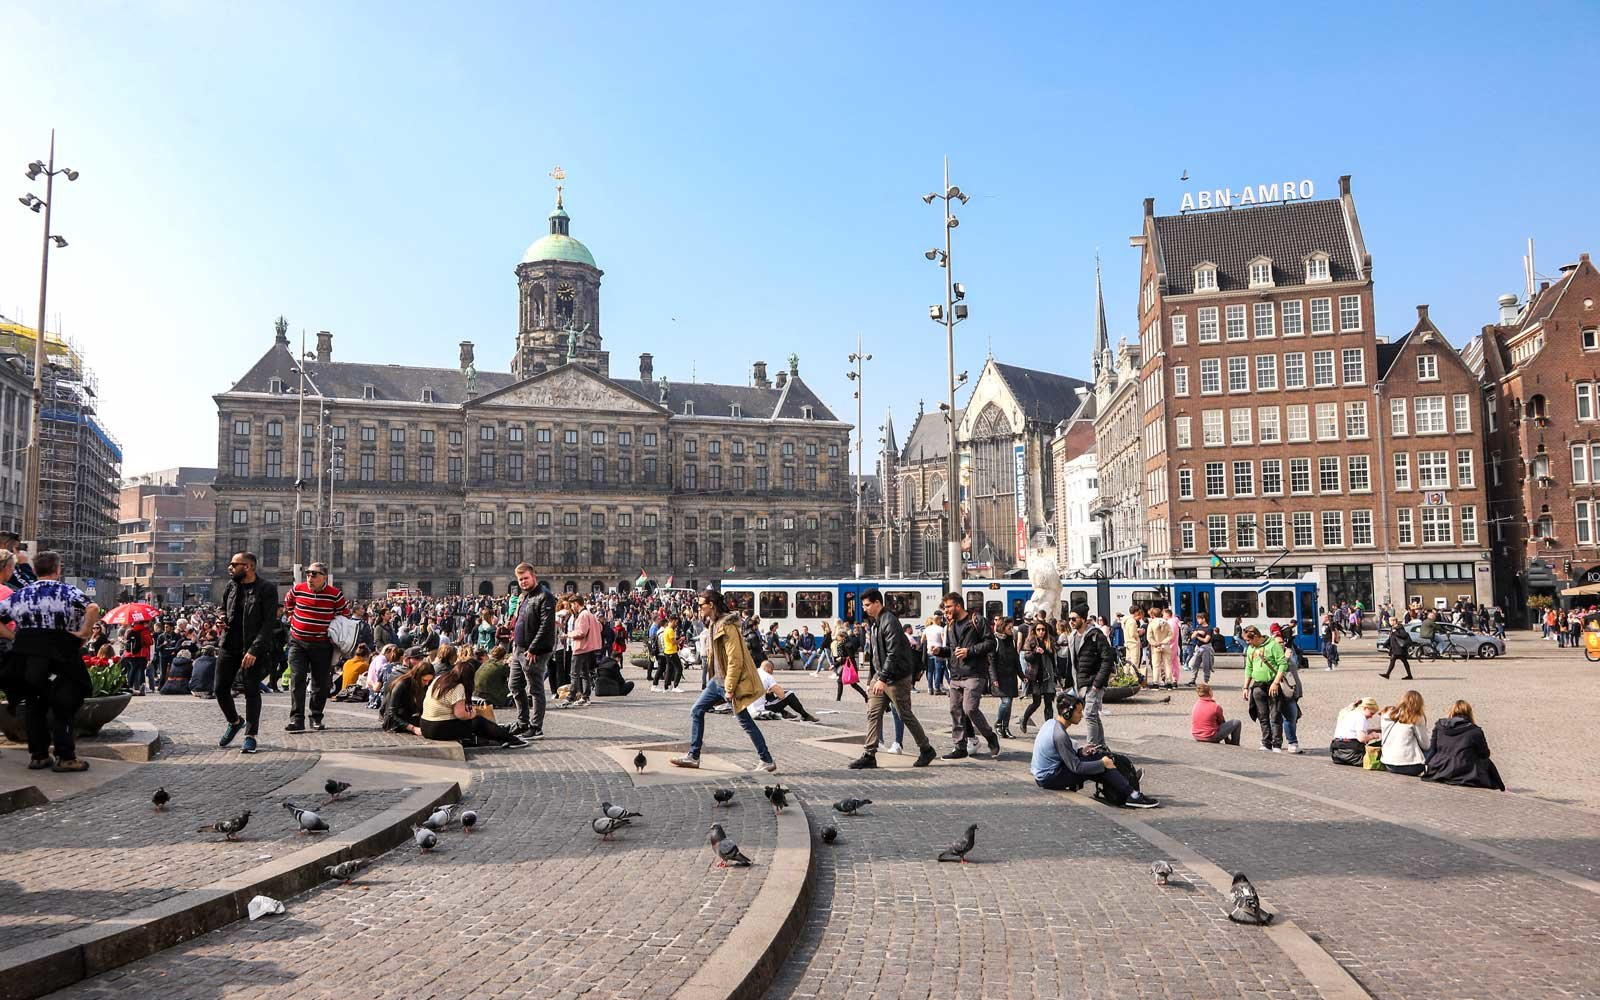 Dam Square in Amsterdam, a town square in the Dutch capital